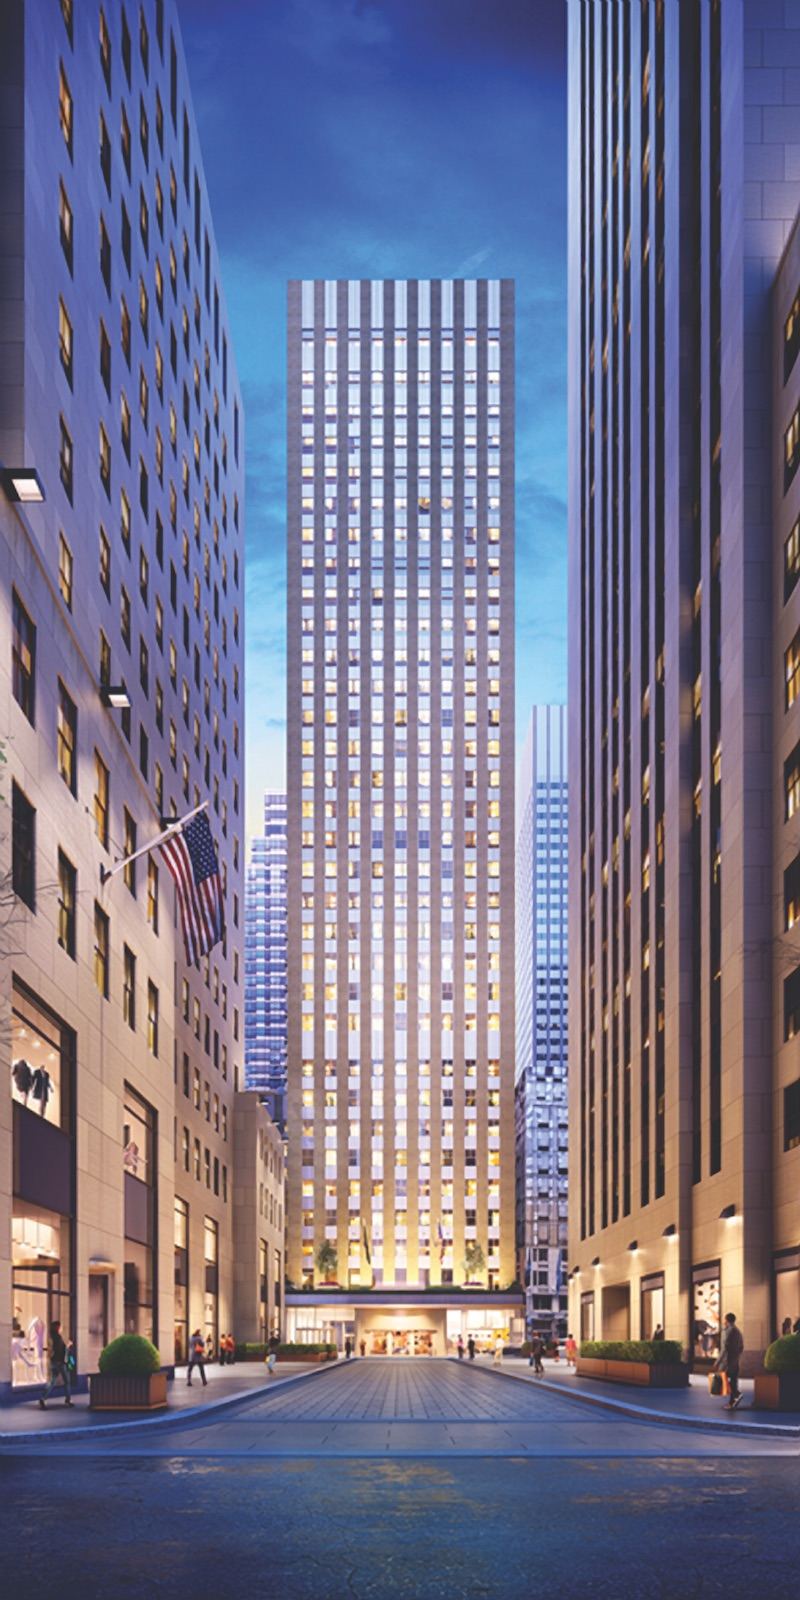 https://www.bdcnetwork.com/rockefeller-remake-iconic-new-york-tower-modernized-its-next-life